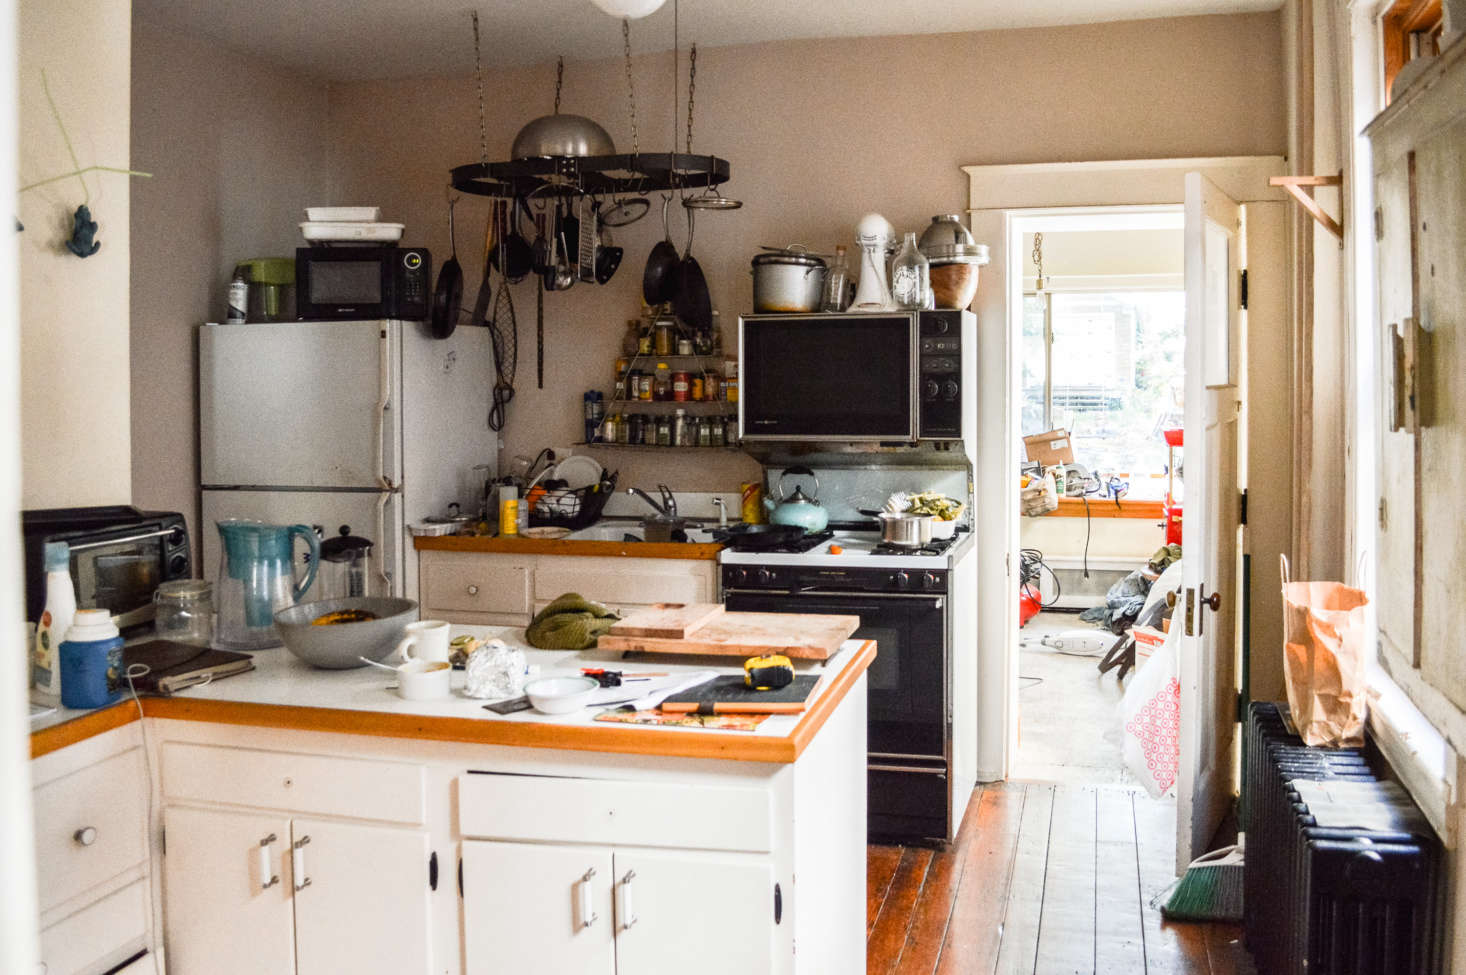 The kitchen was last tackled in the 70s and included a small addition in the back used as the pantry.